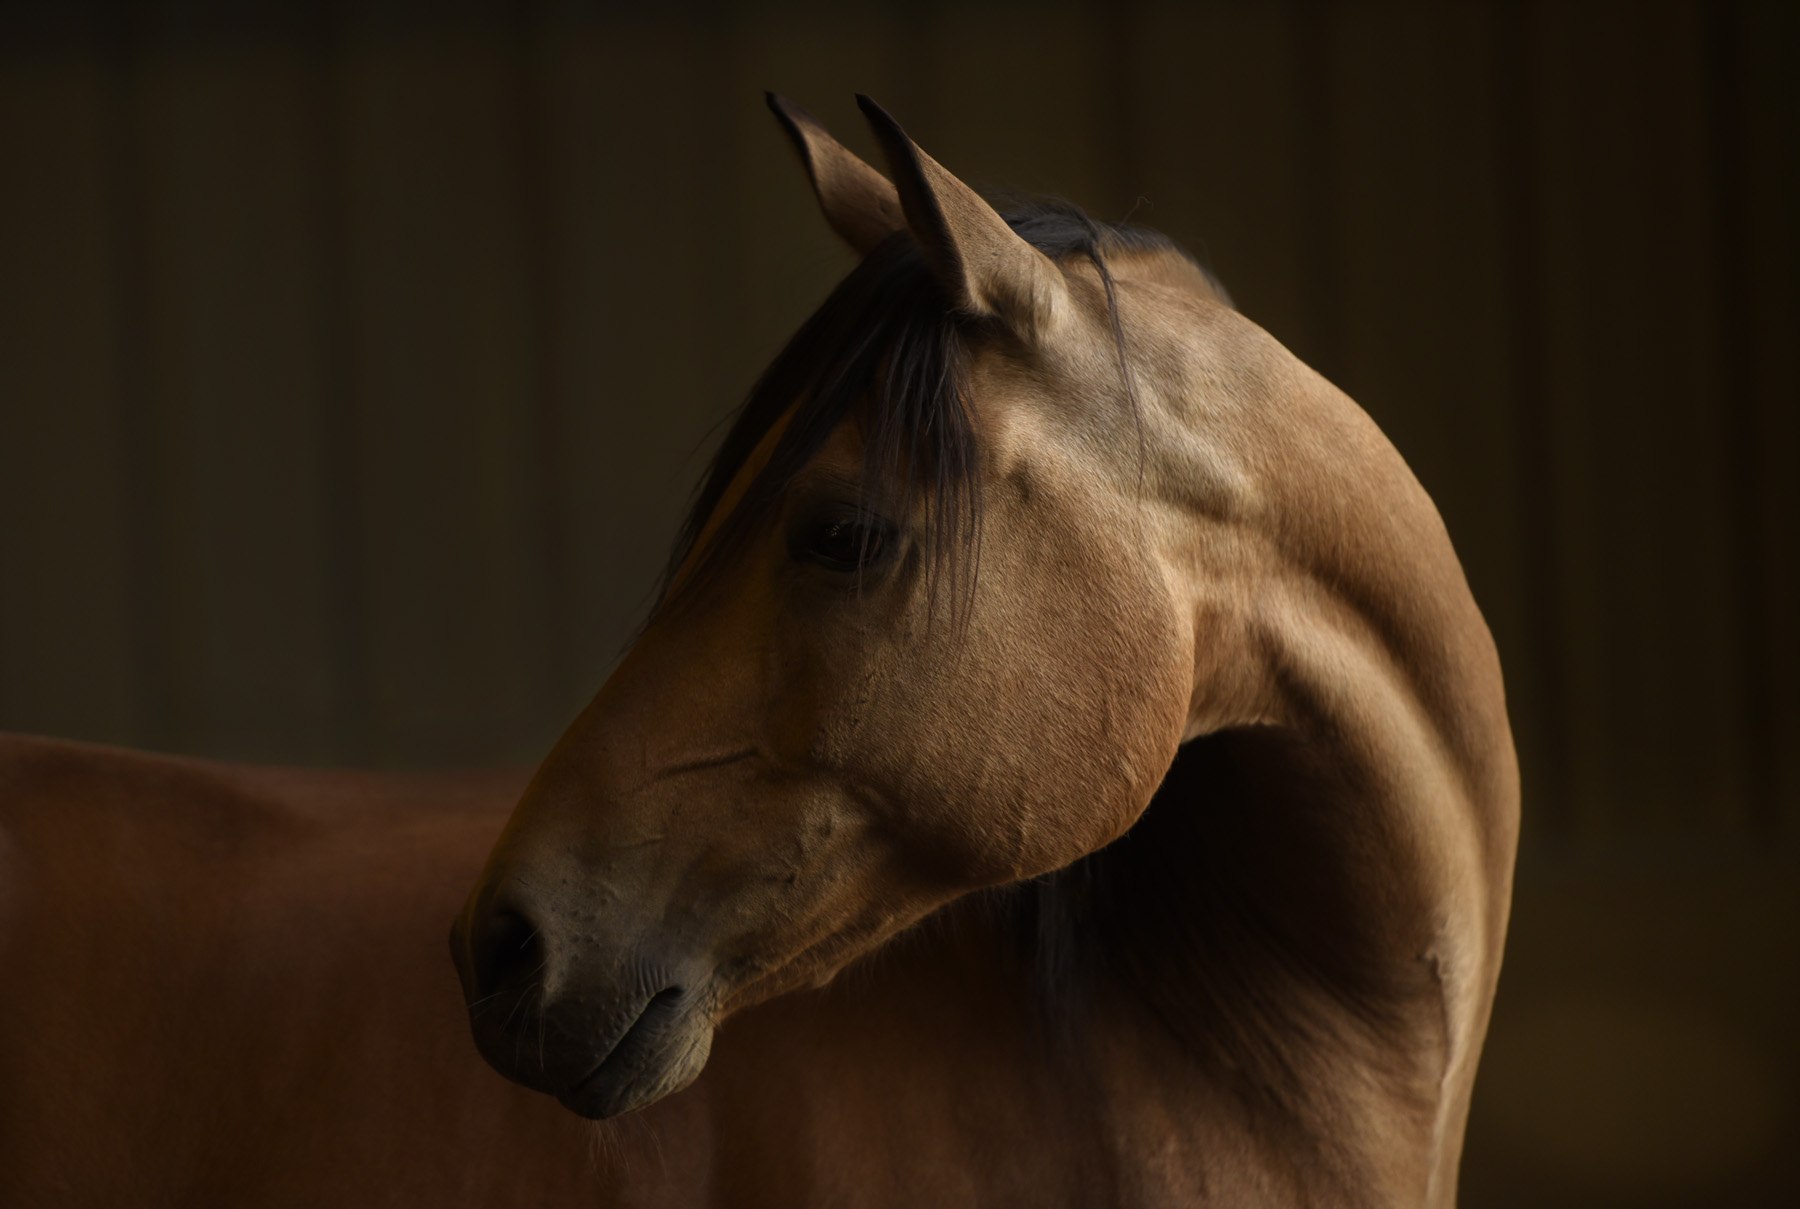 - 1. Show barn12 x 12 stall+ 12 x 72' private run$580/month2. Paddock Board - Private12 x 12 loafing shed+24 x 72' private run$505/month3. Paddock Board - Semi-private12 x 12 loafing shed+ 24 x 72' runShared with 1-2 compatible horses$475/month4. Guest barn12 x 12 stall+ overnight turnout.$475/month5. Overnighter12 x 12' stallor paddock option$25/nightPhoto featuring: Tupelo,a buckskin,Andalusian-Arabian dream horse, who lives at Trinity.Photo Credit: Tony Stromberg